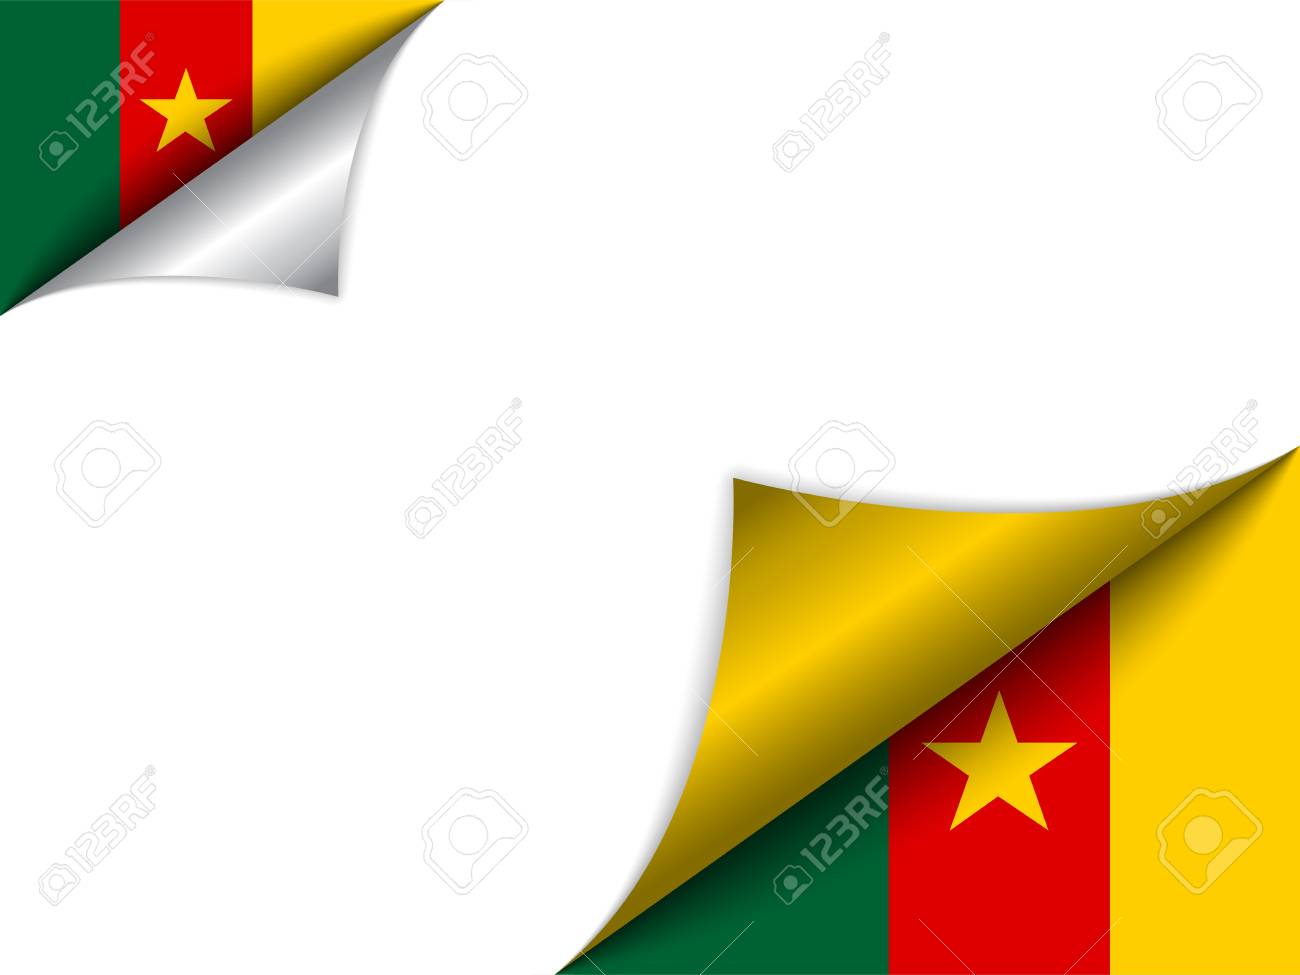 Vector - Cameroon Country Flag Turning Page Stock Vector - 15953953